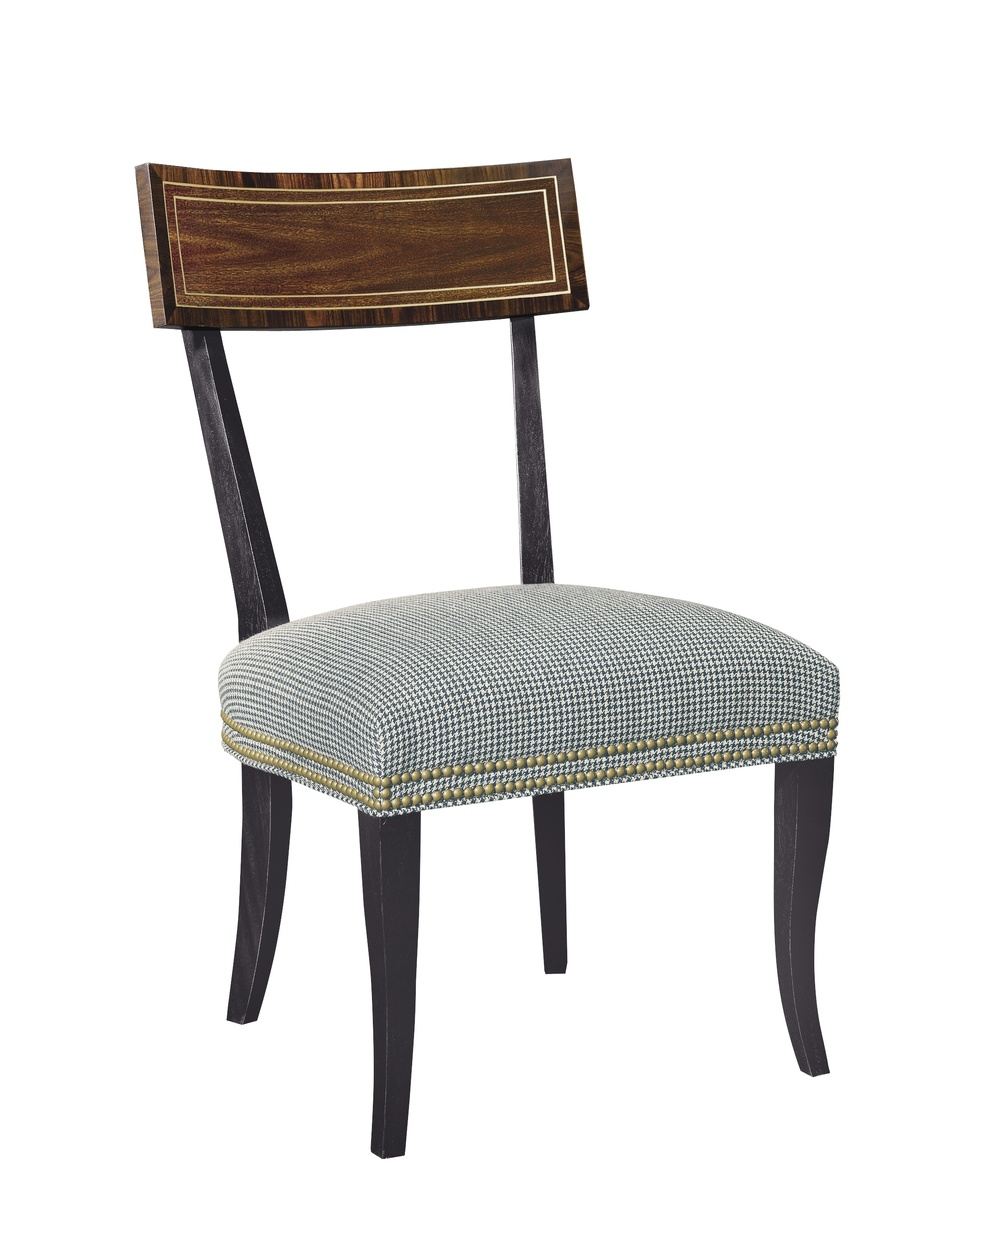 Hickory Chair - Blix Side Chair